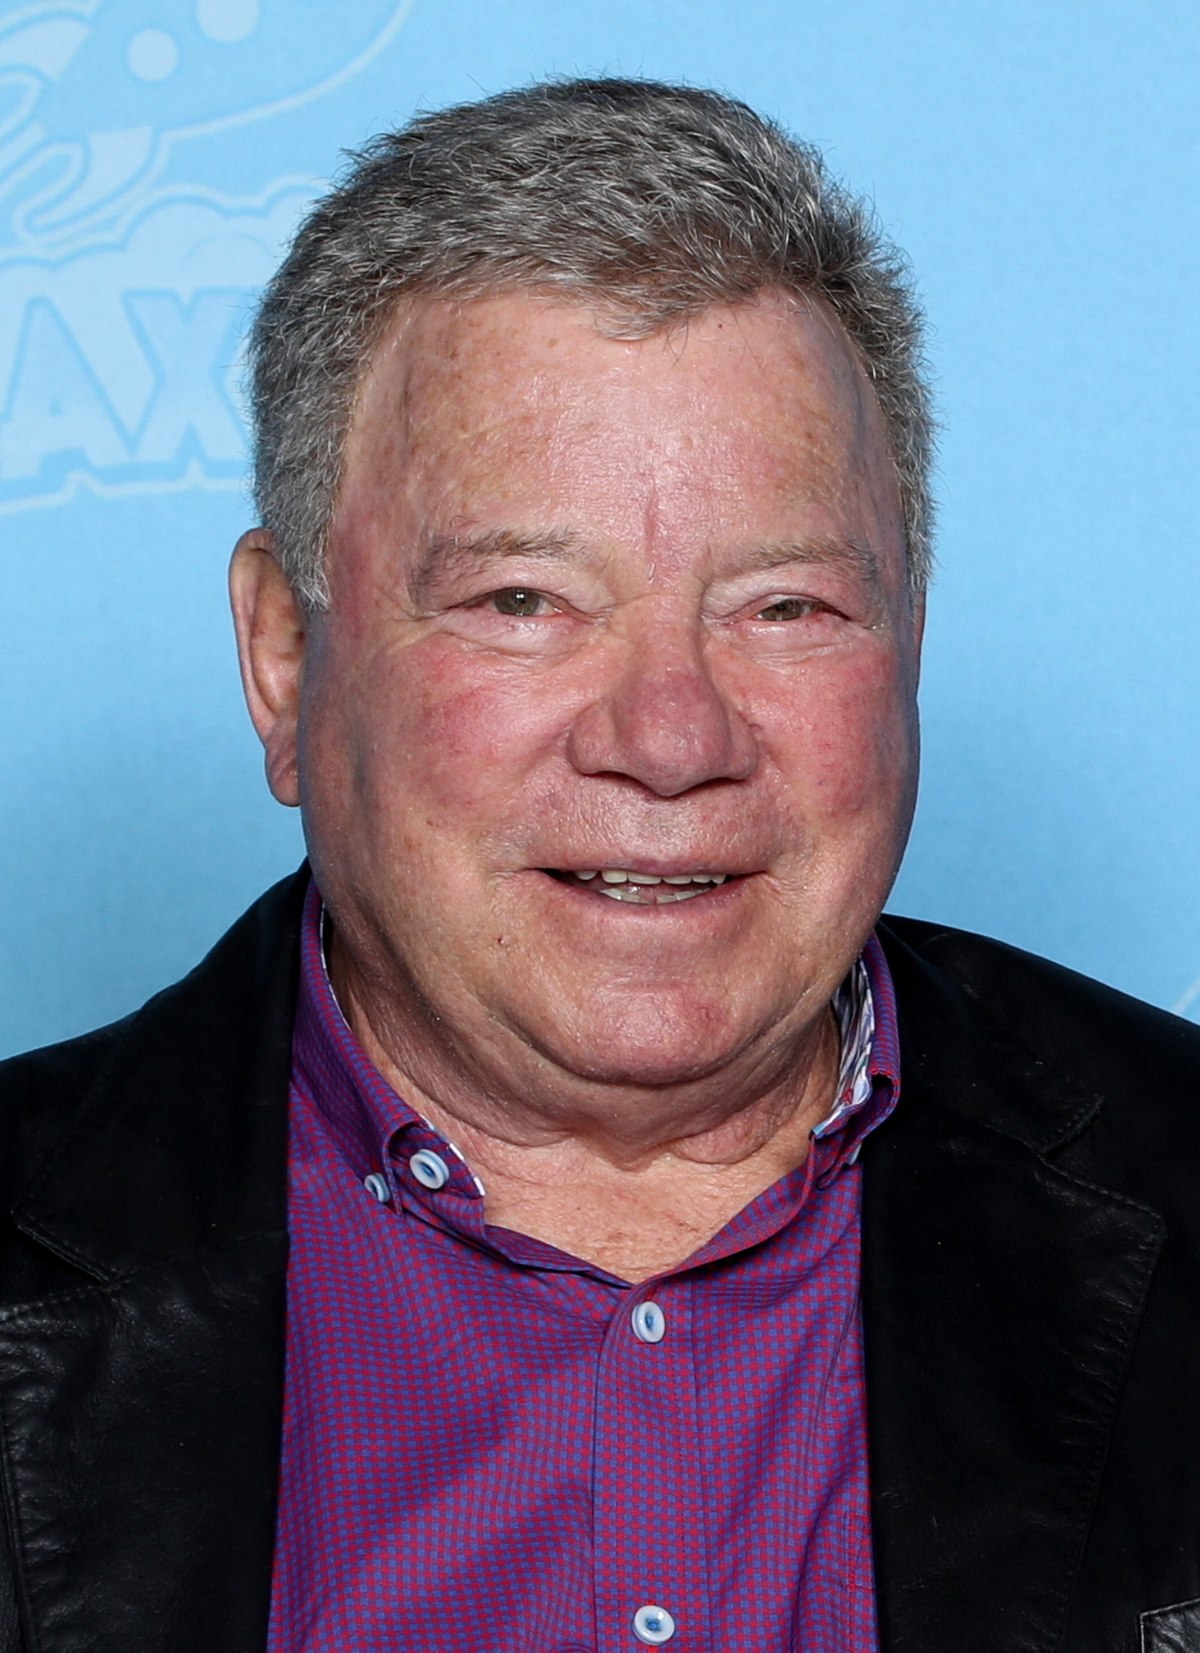 William Shatner Wikipedia